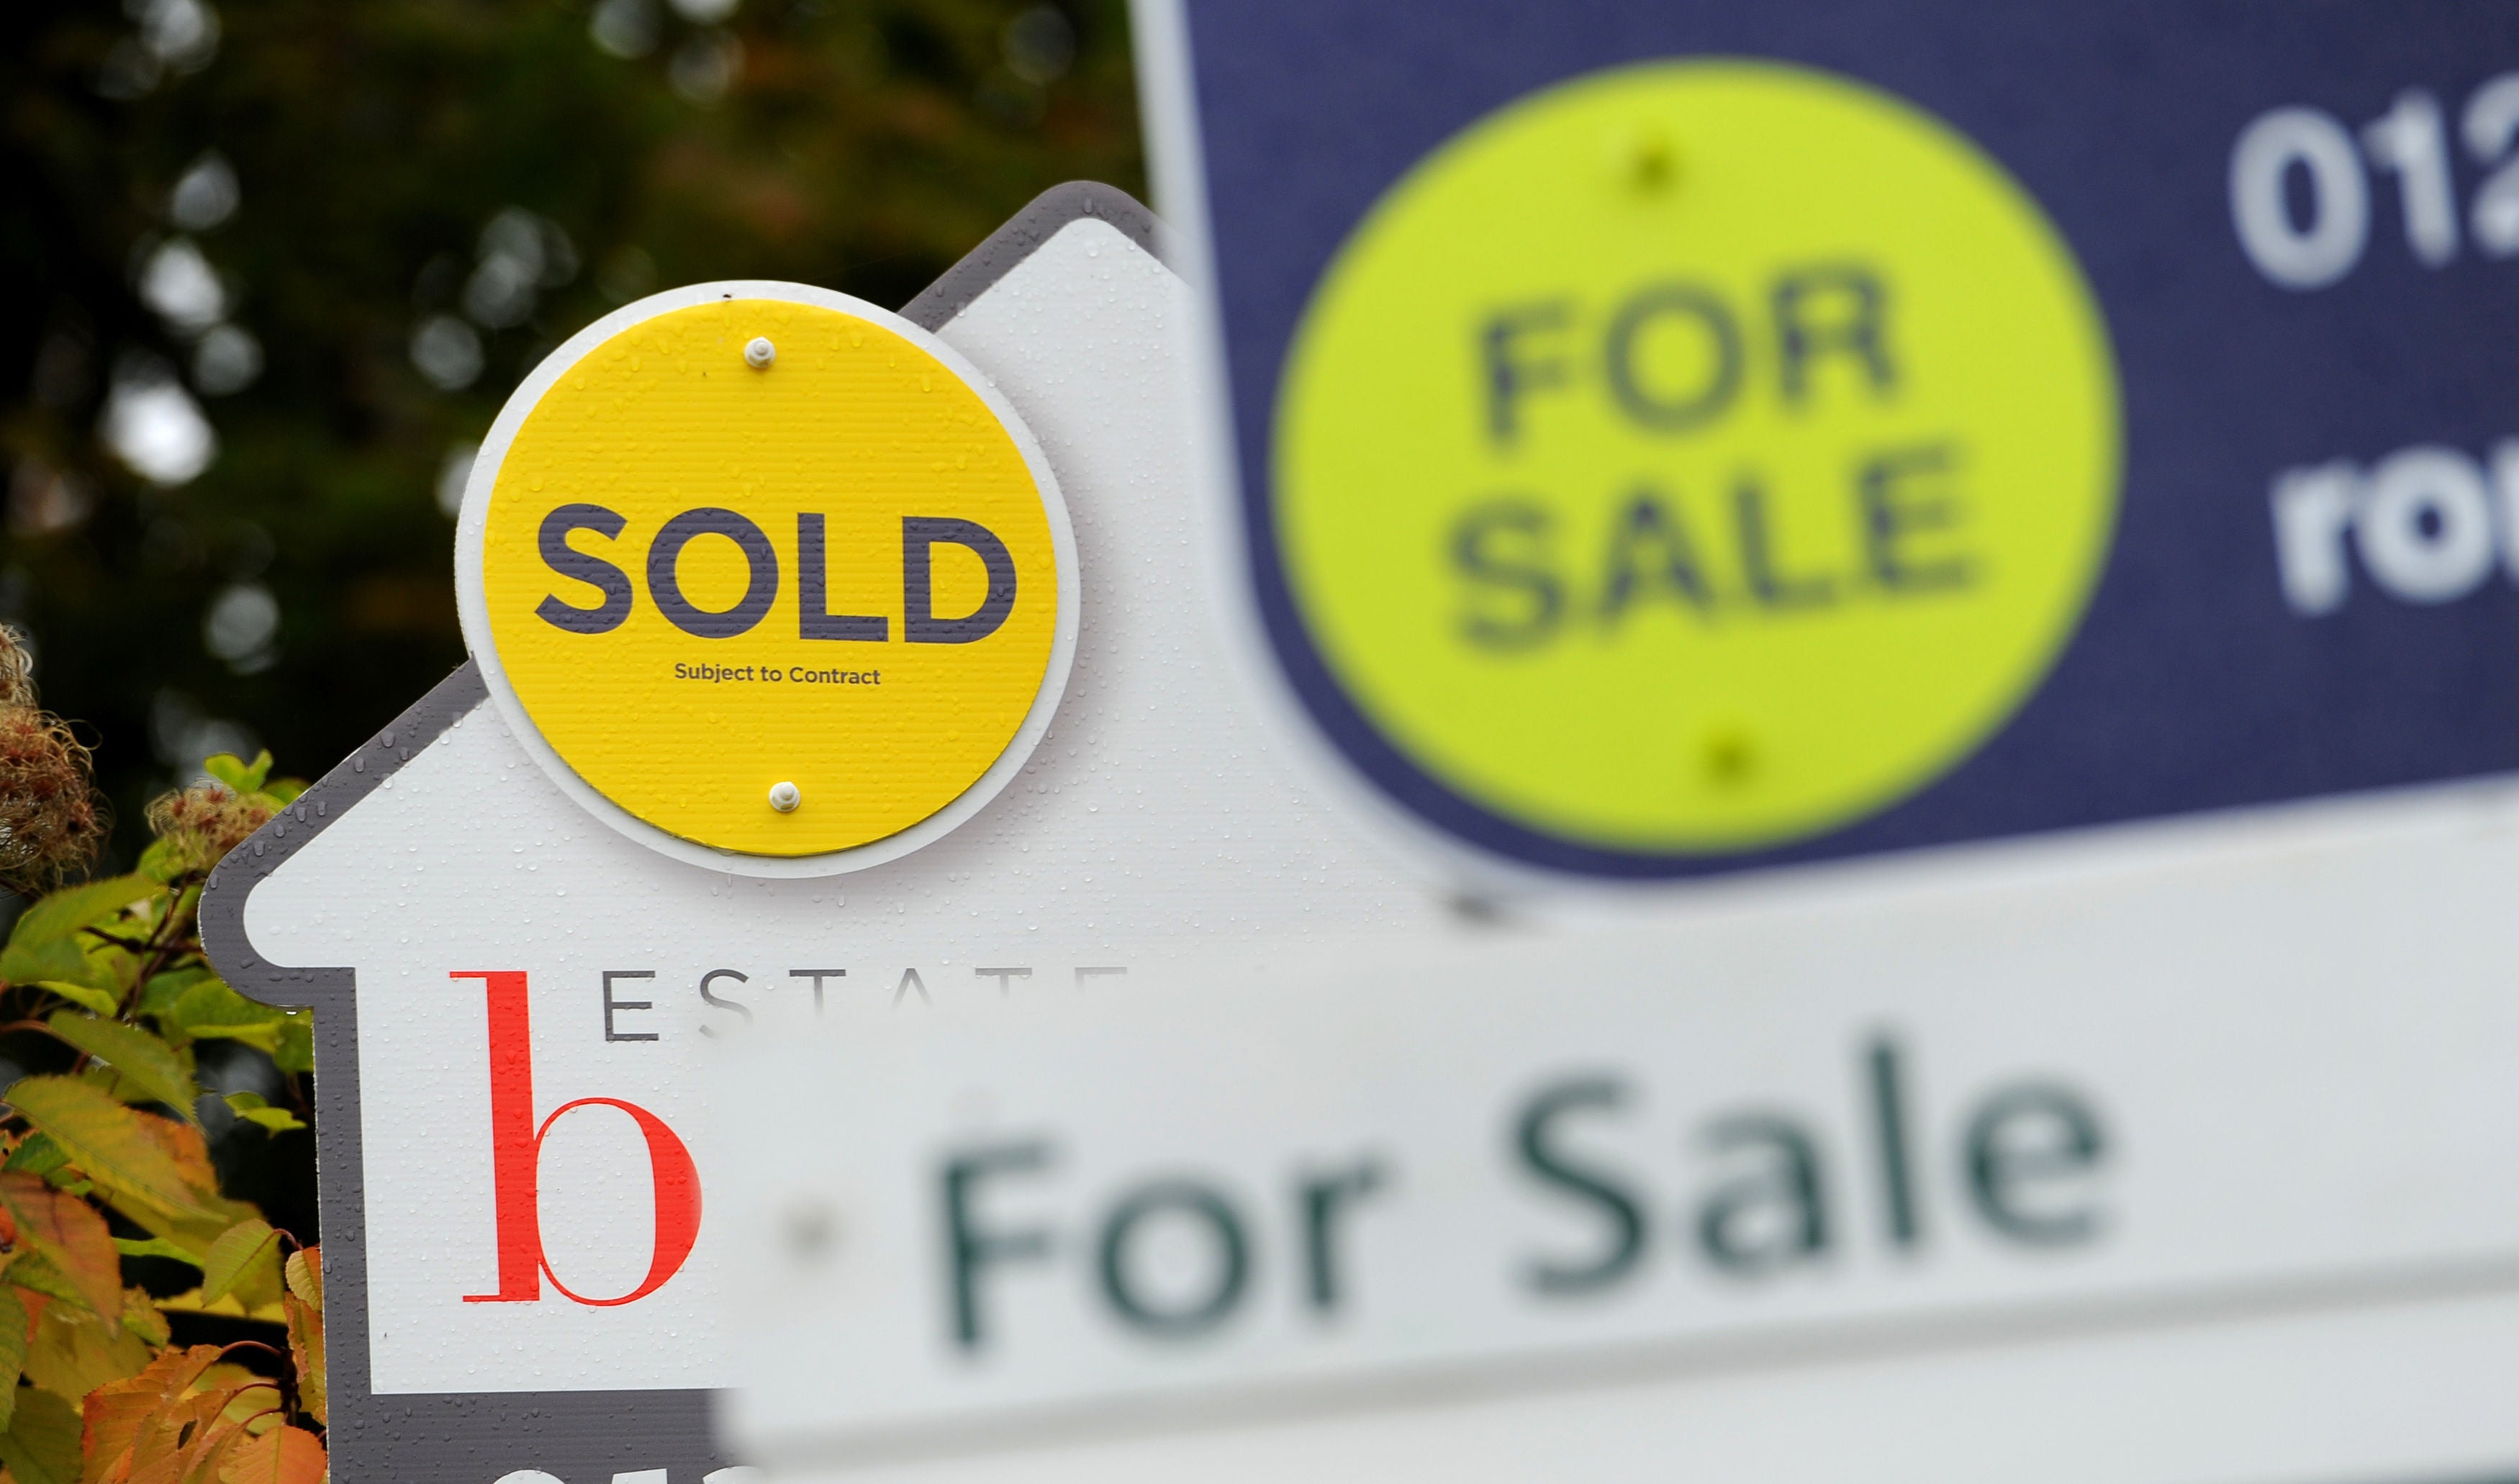 independent.co.uk - Vicky Shaw - Housing market 'set to record its strongest year since 2007'